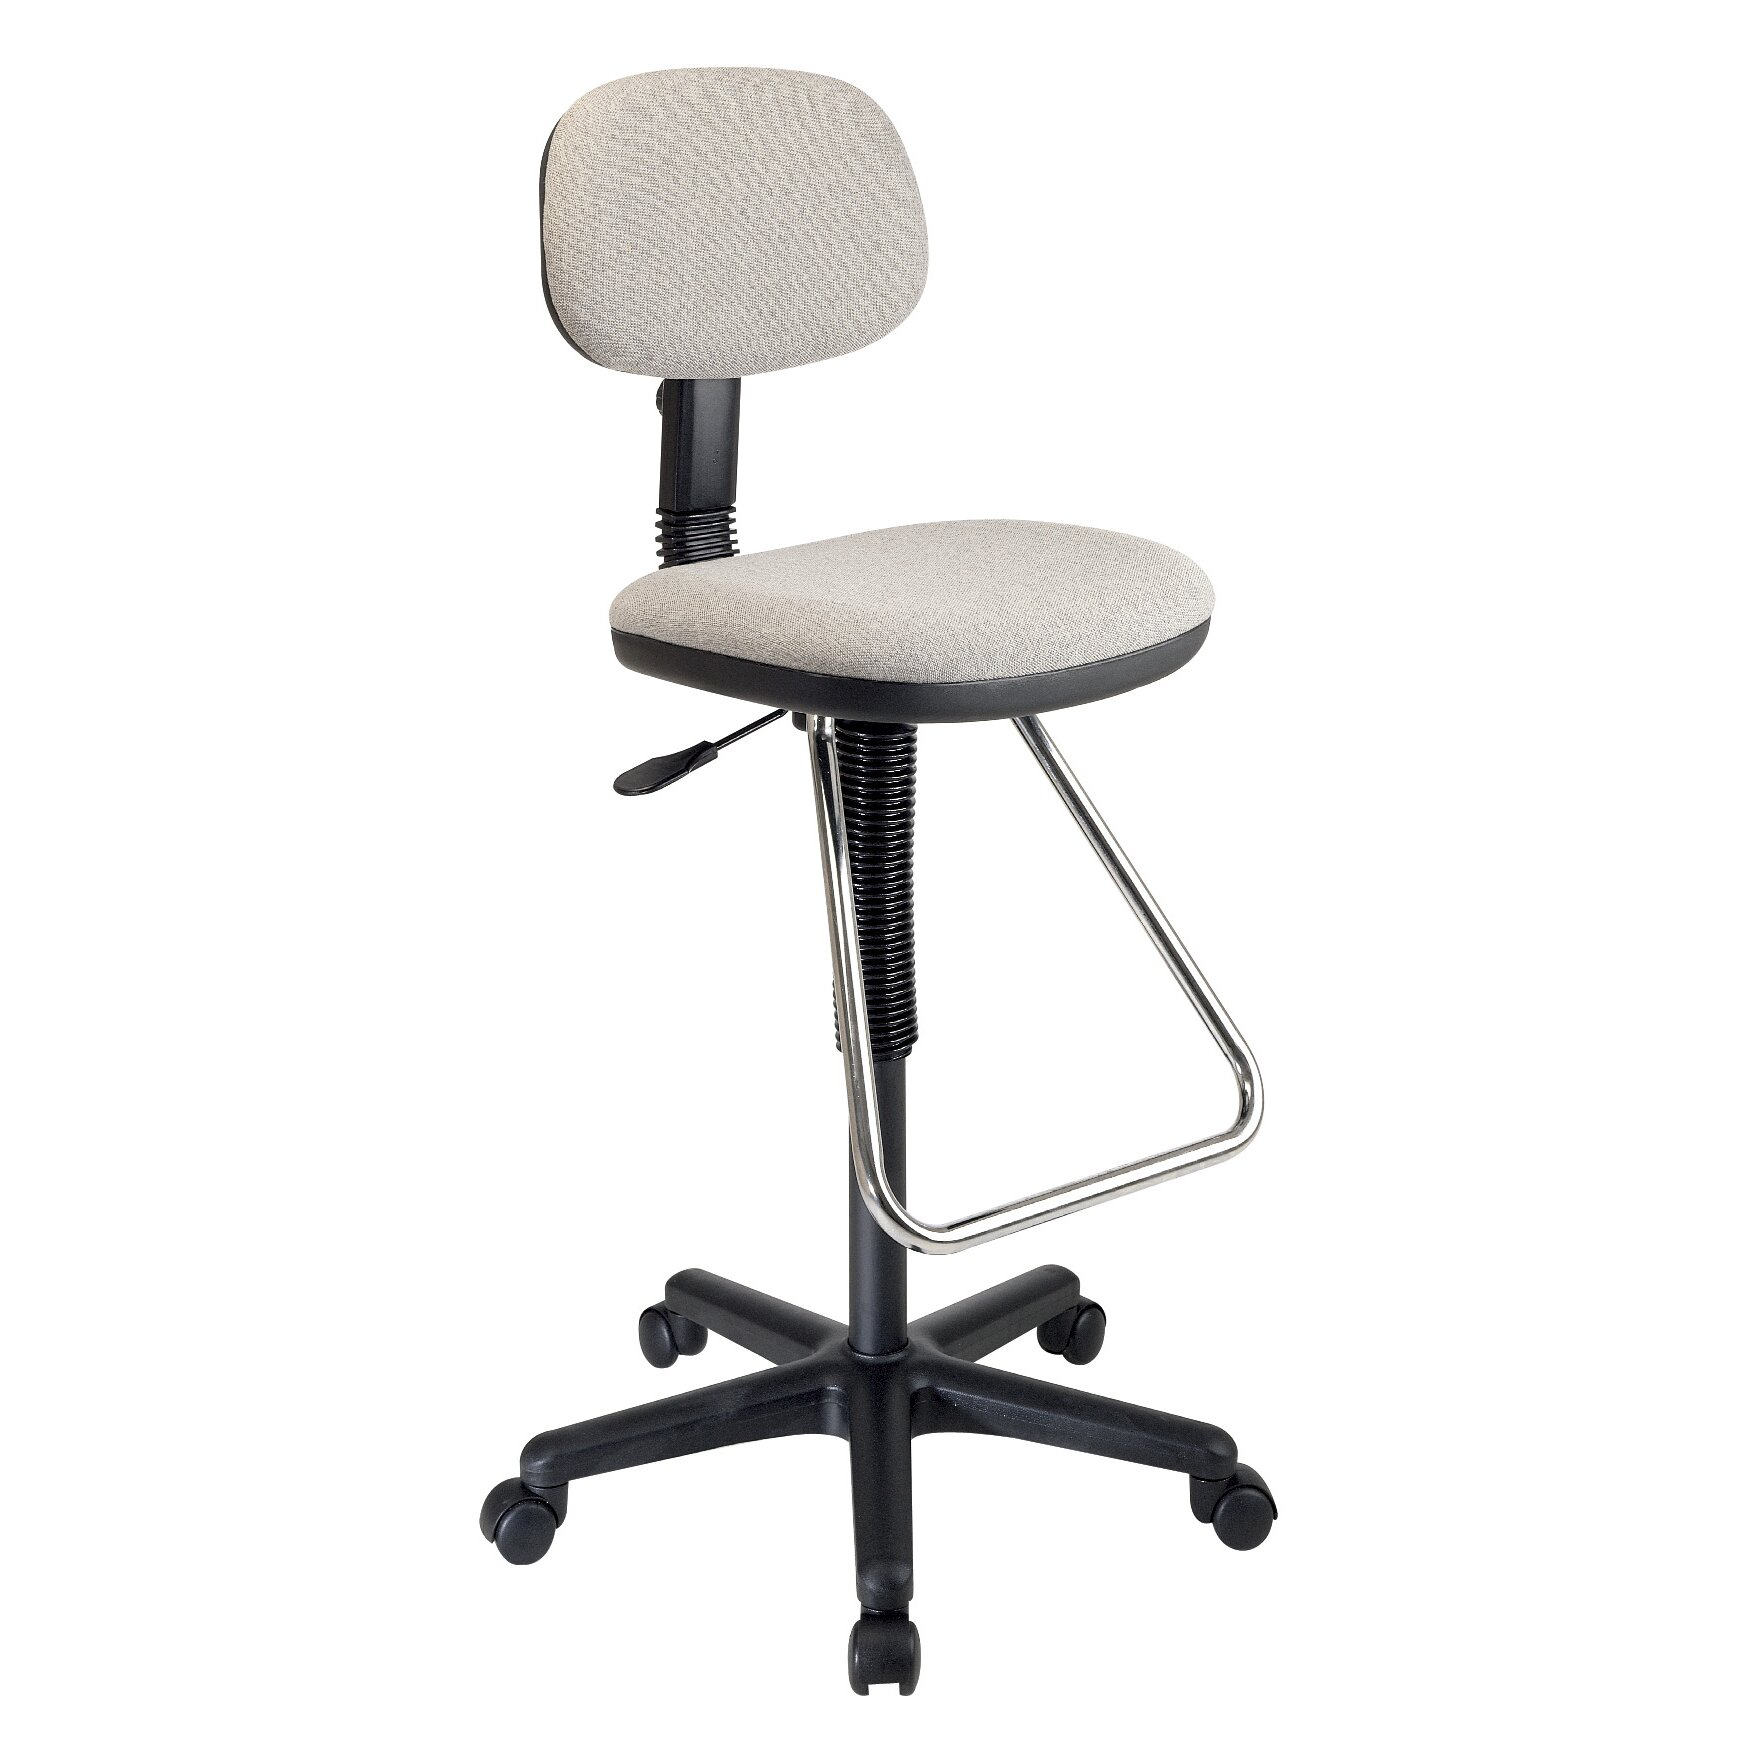 office star height adjustable drafting chair with footrest reviews wayfair supply. Black Bedroom Furniture Sets. Home Design Ideas